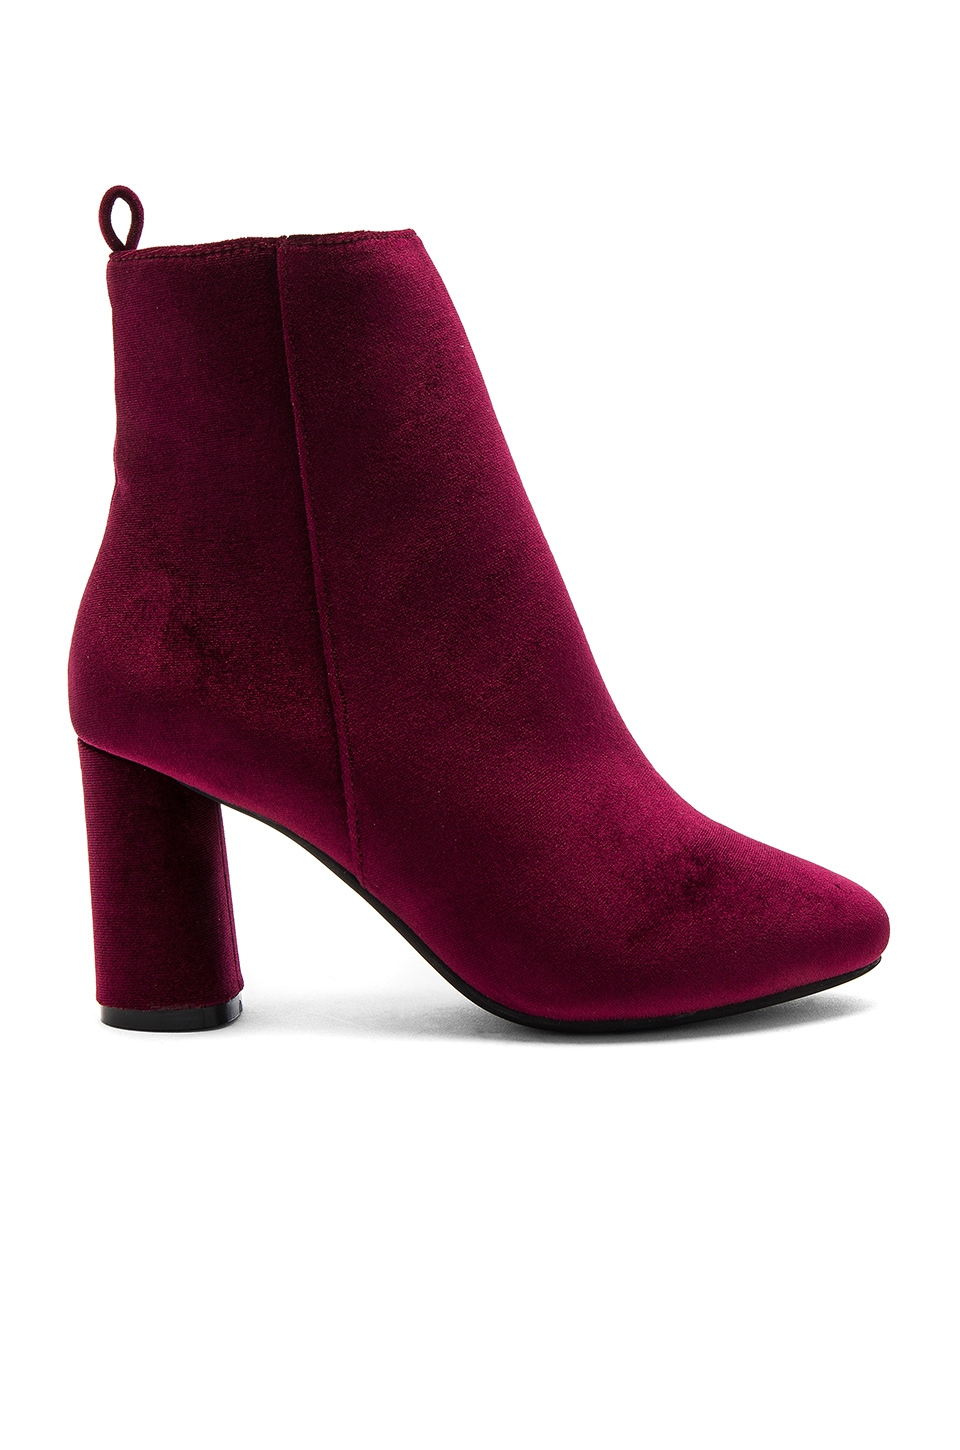 RAYE X NBD Afton Bootie in Scarlet